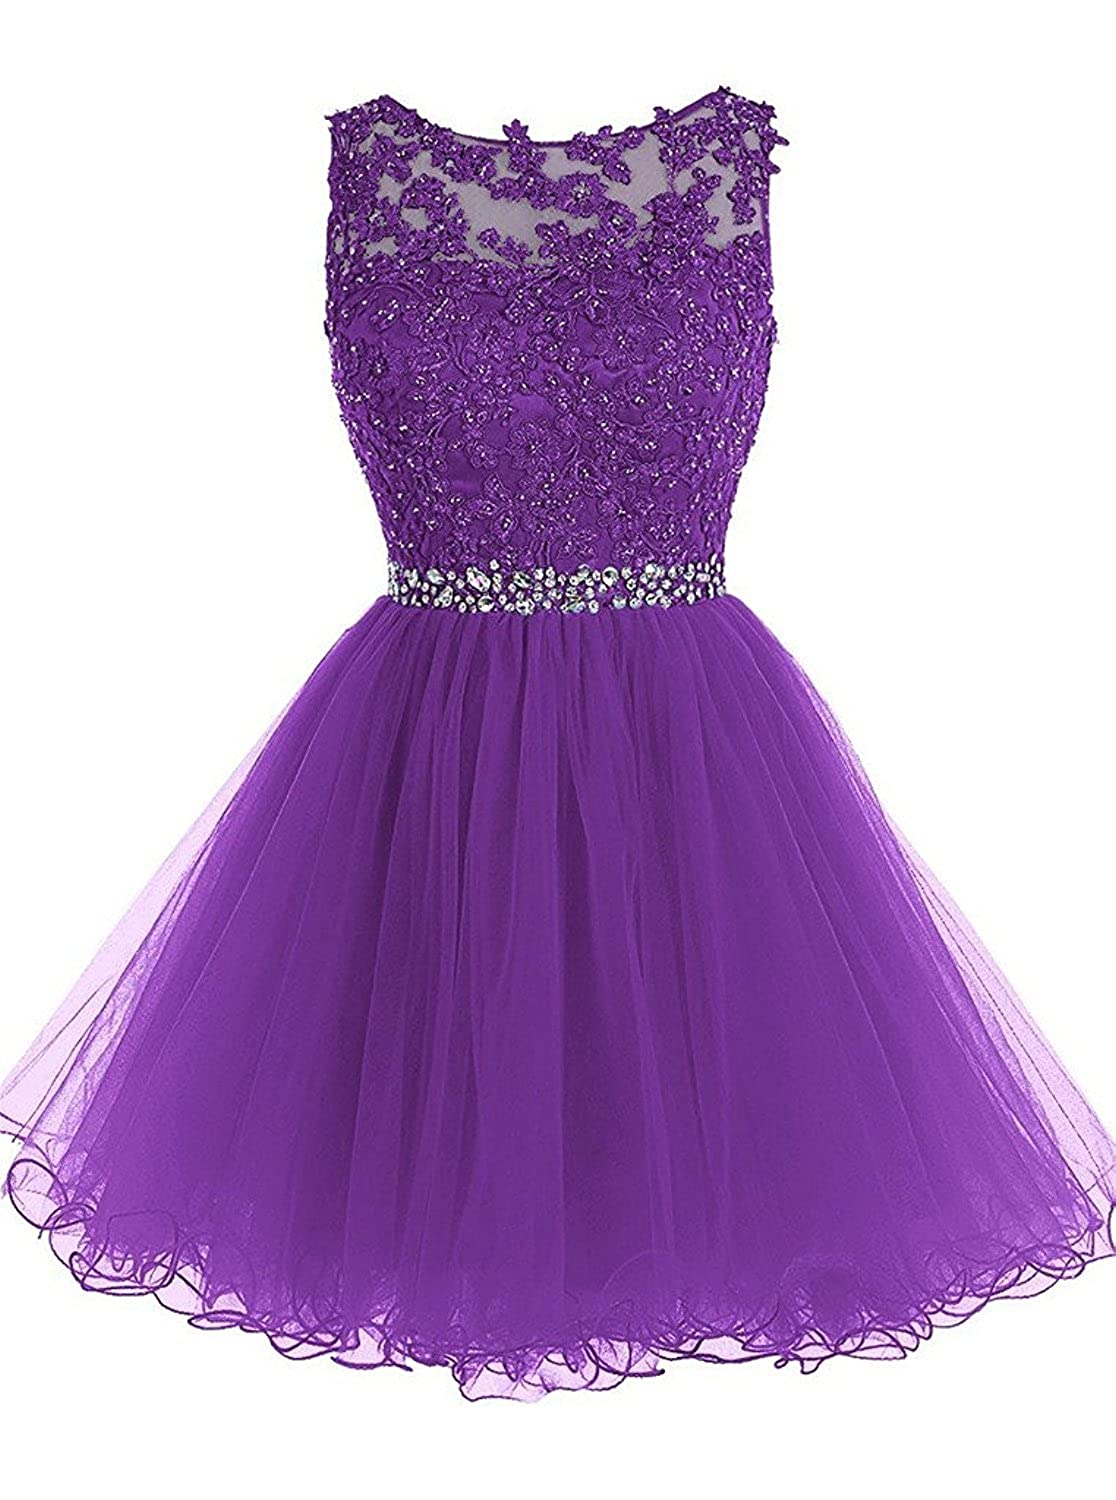 Purple Caissen Women's Short Ball Gown Sheer Crew Neck Beading Appliques Tulle Prom Dress Open Back with Zipper Mini Party Dress